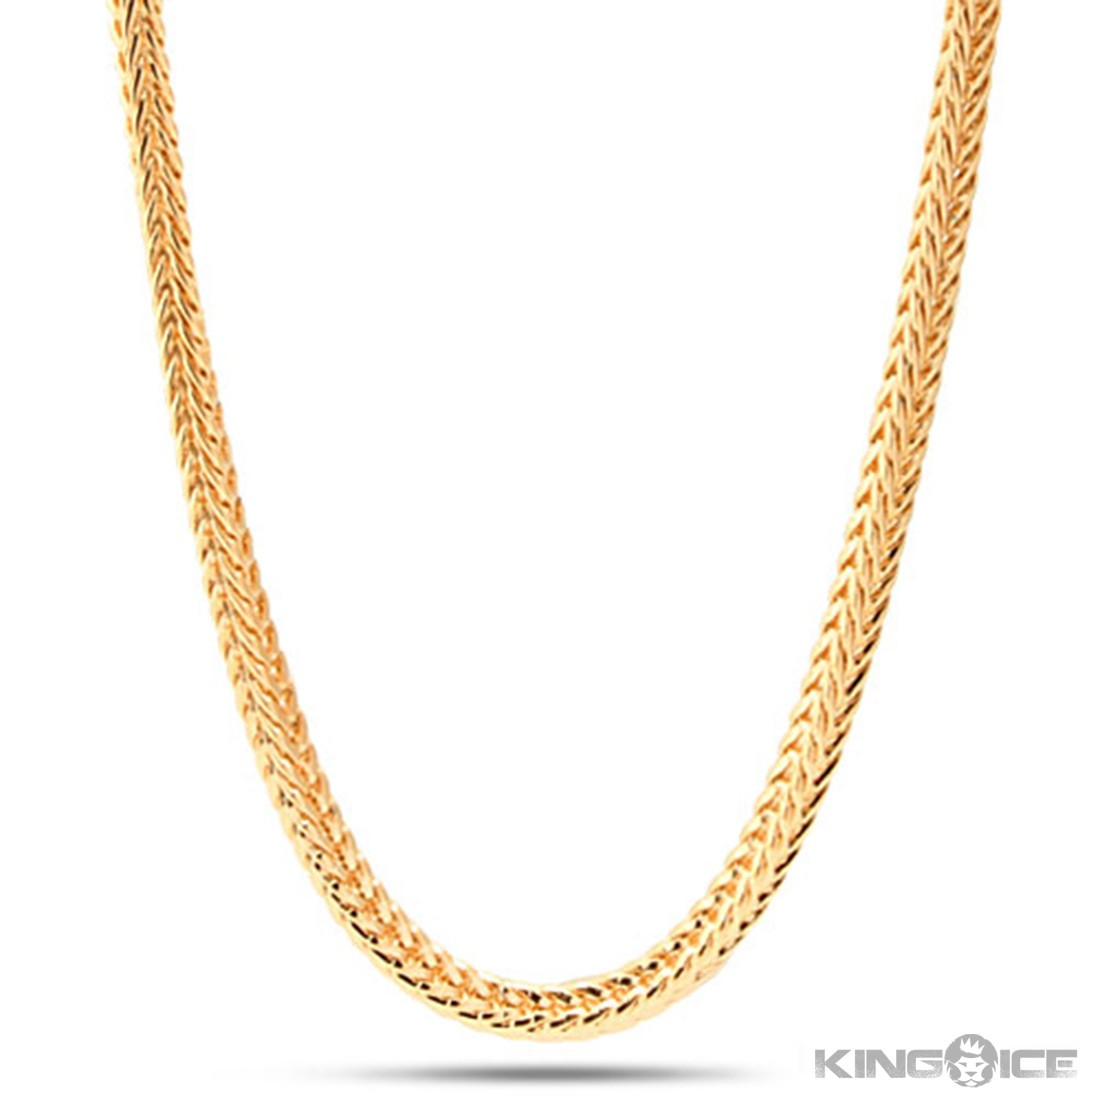 Chain HD PNG Transparent Chain HD.PNG Images..